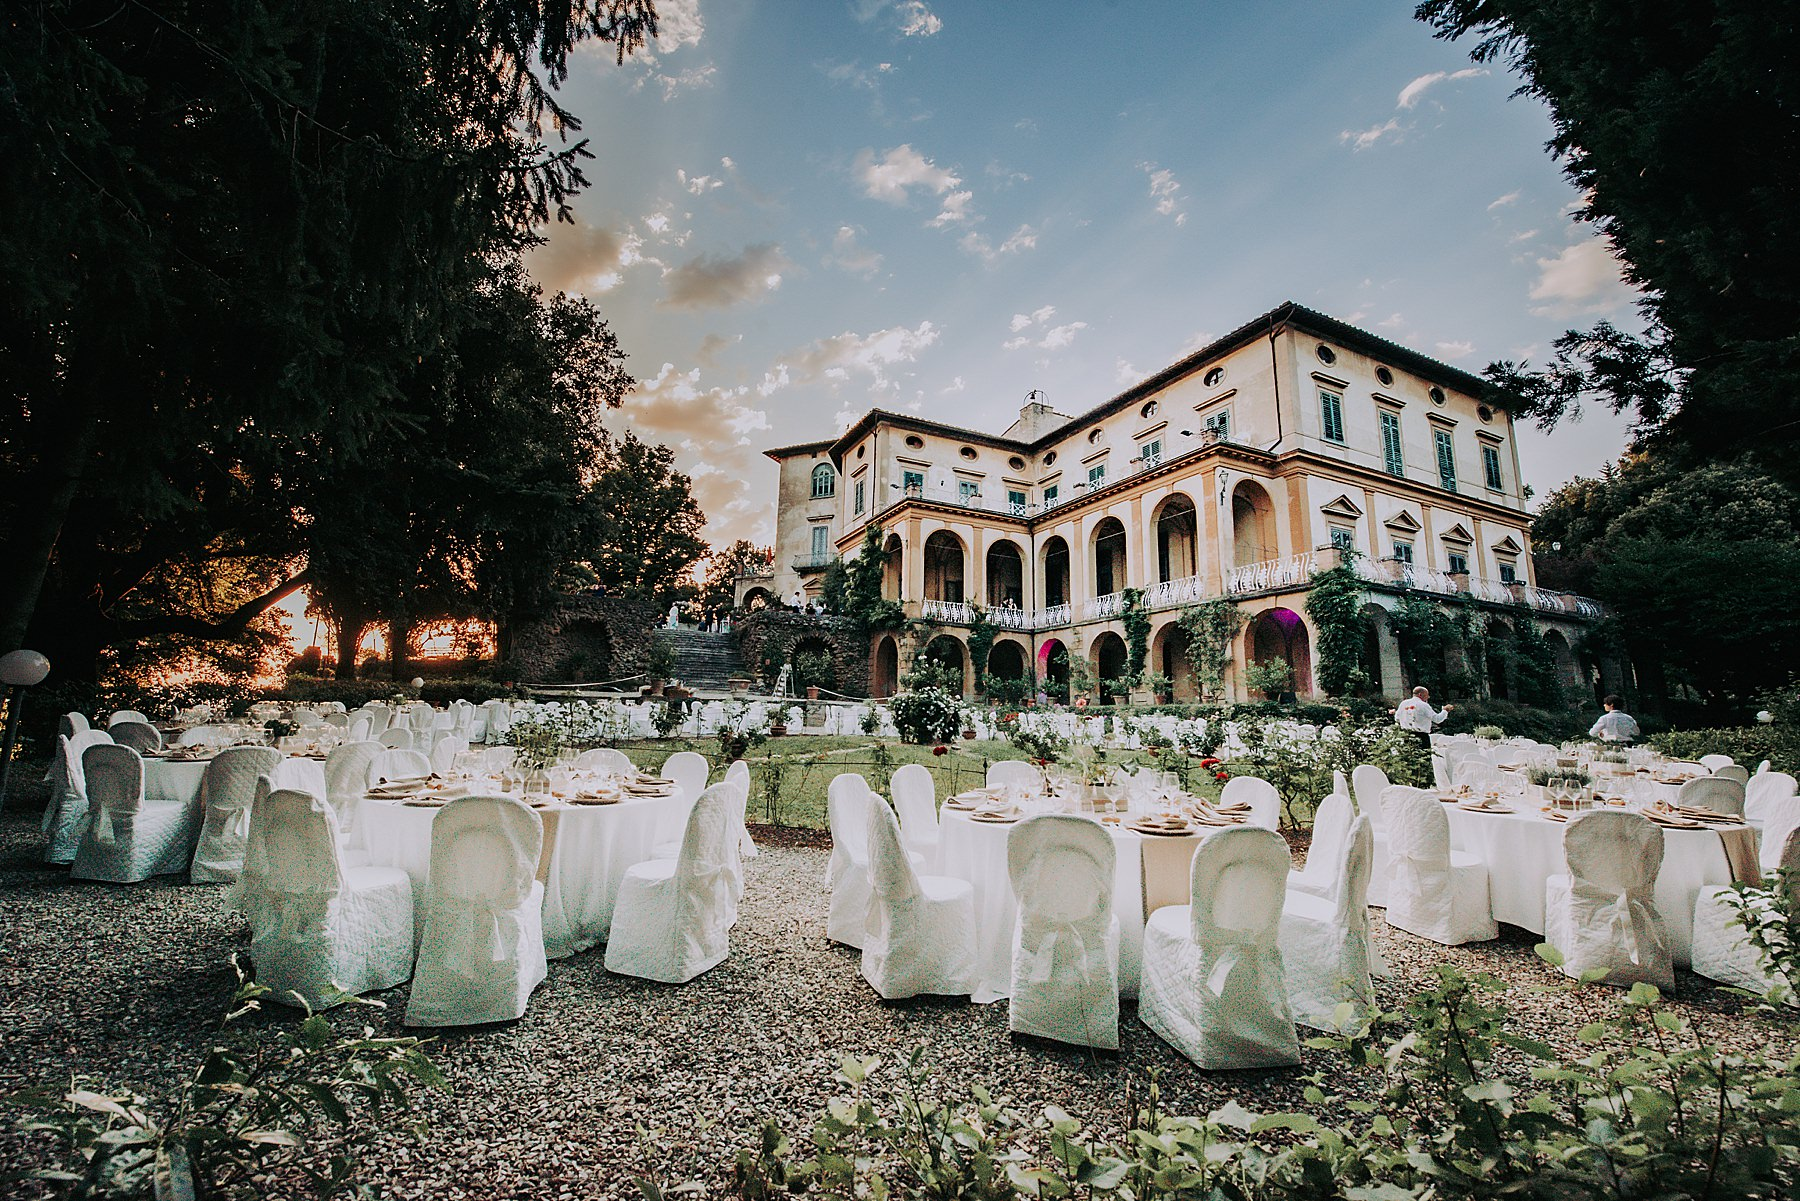 Matrimonio a Villa di Striano in Mugello